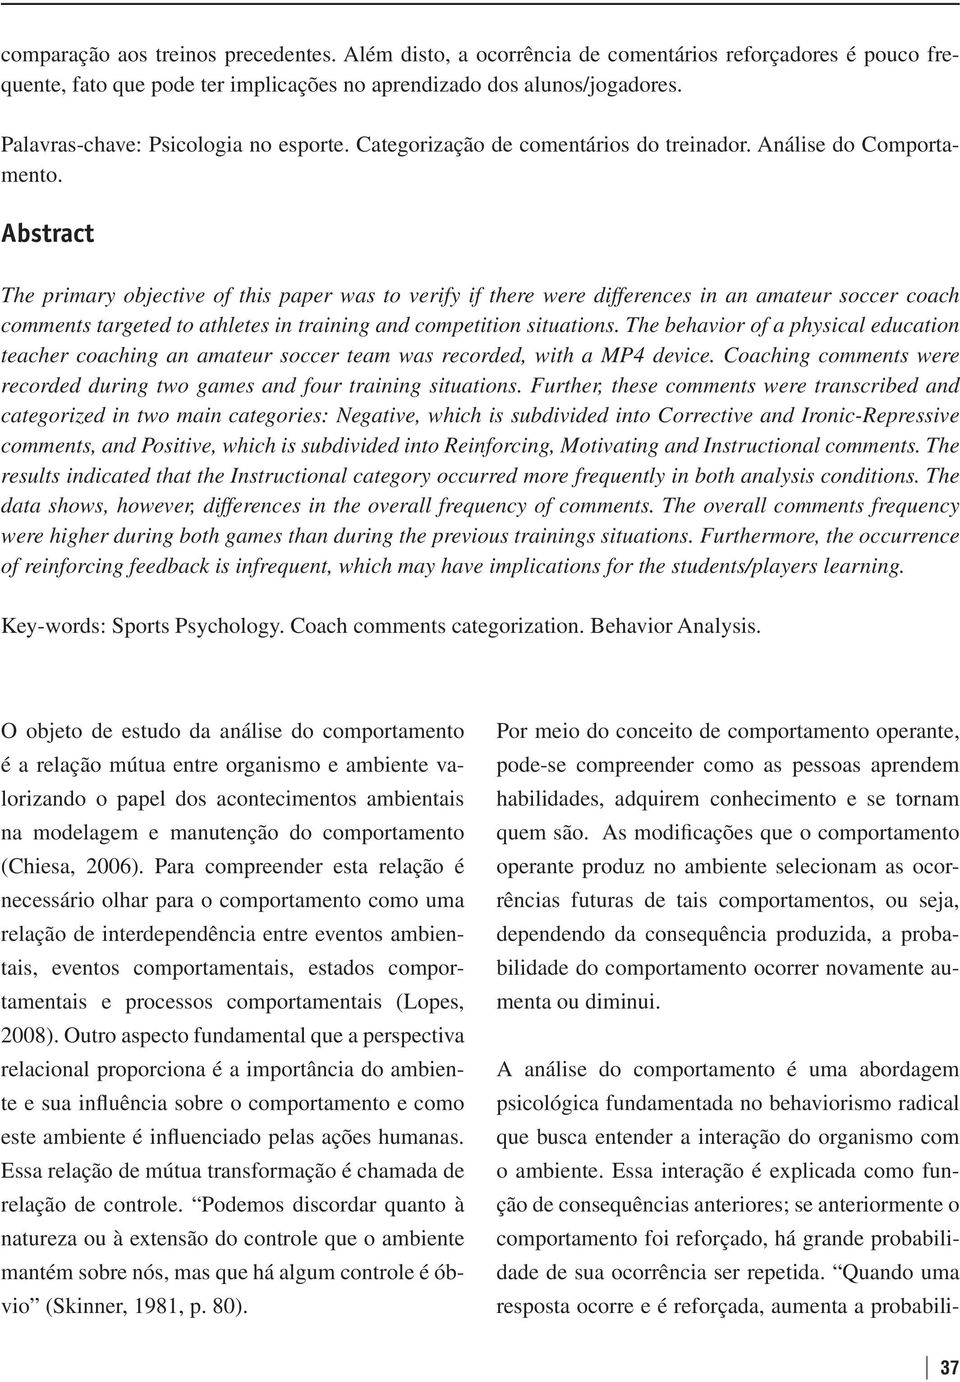 Abstract The primary objective of this paper was to verify if there were differences in an amateur soccer coach comments targeted to athletes in training and competition situations.